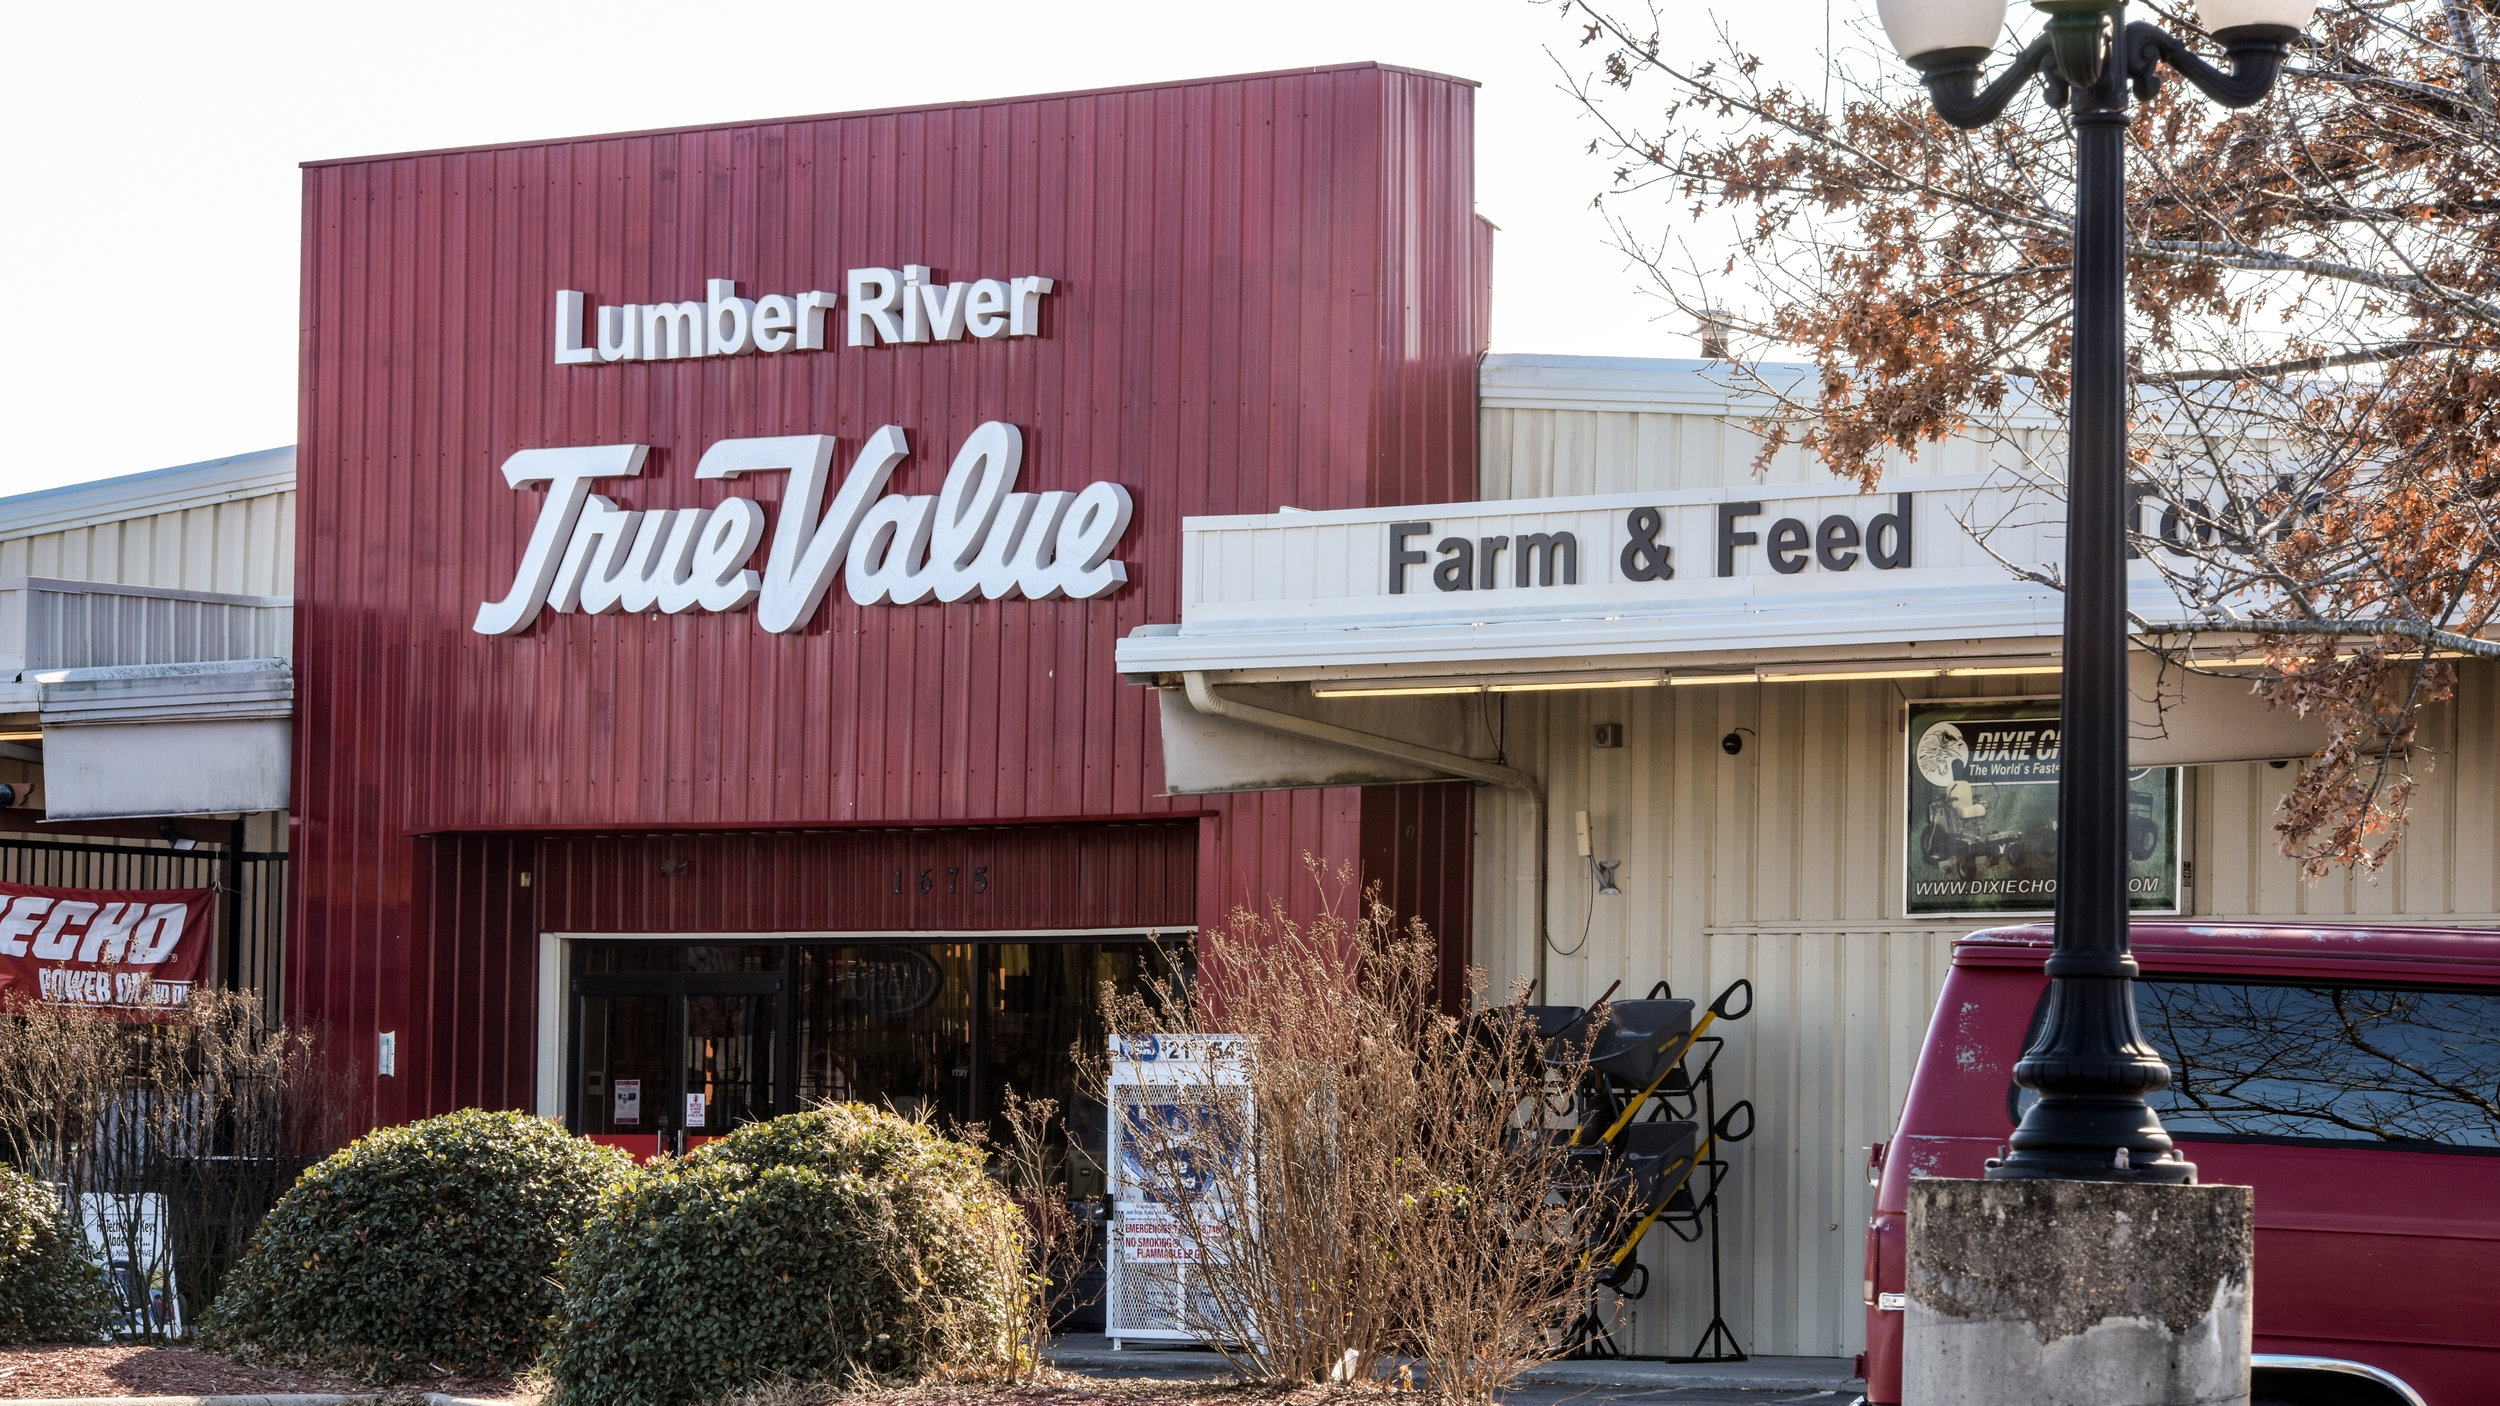 Al Locklear, a lumbee, owns Lumber River Trading/True Value Hardware in Lumberton, the seat of Robeson County. He says the county needs the Atlantic Coast Pipeline to create jobs after the North American Free Trade Agreement took them away.